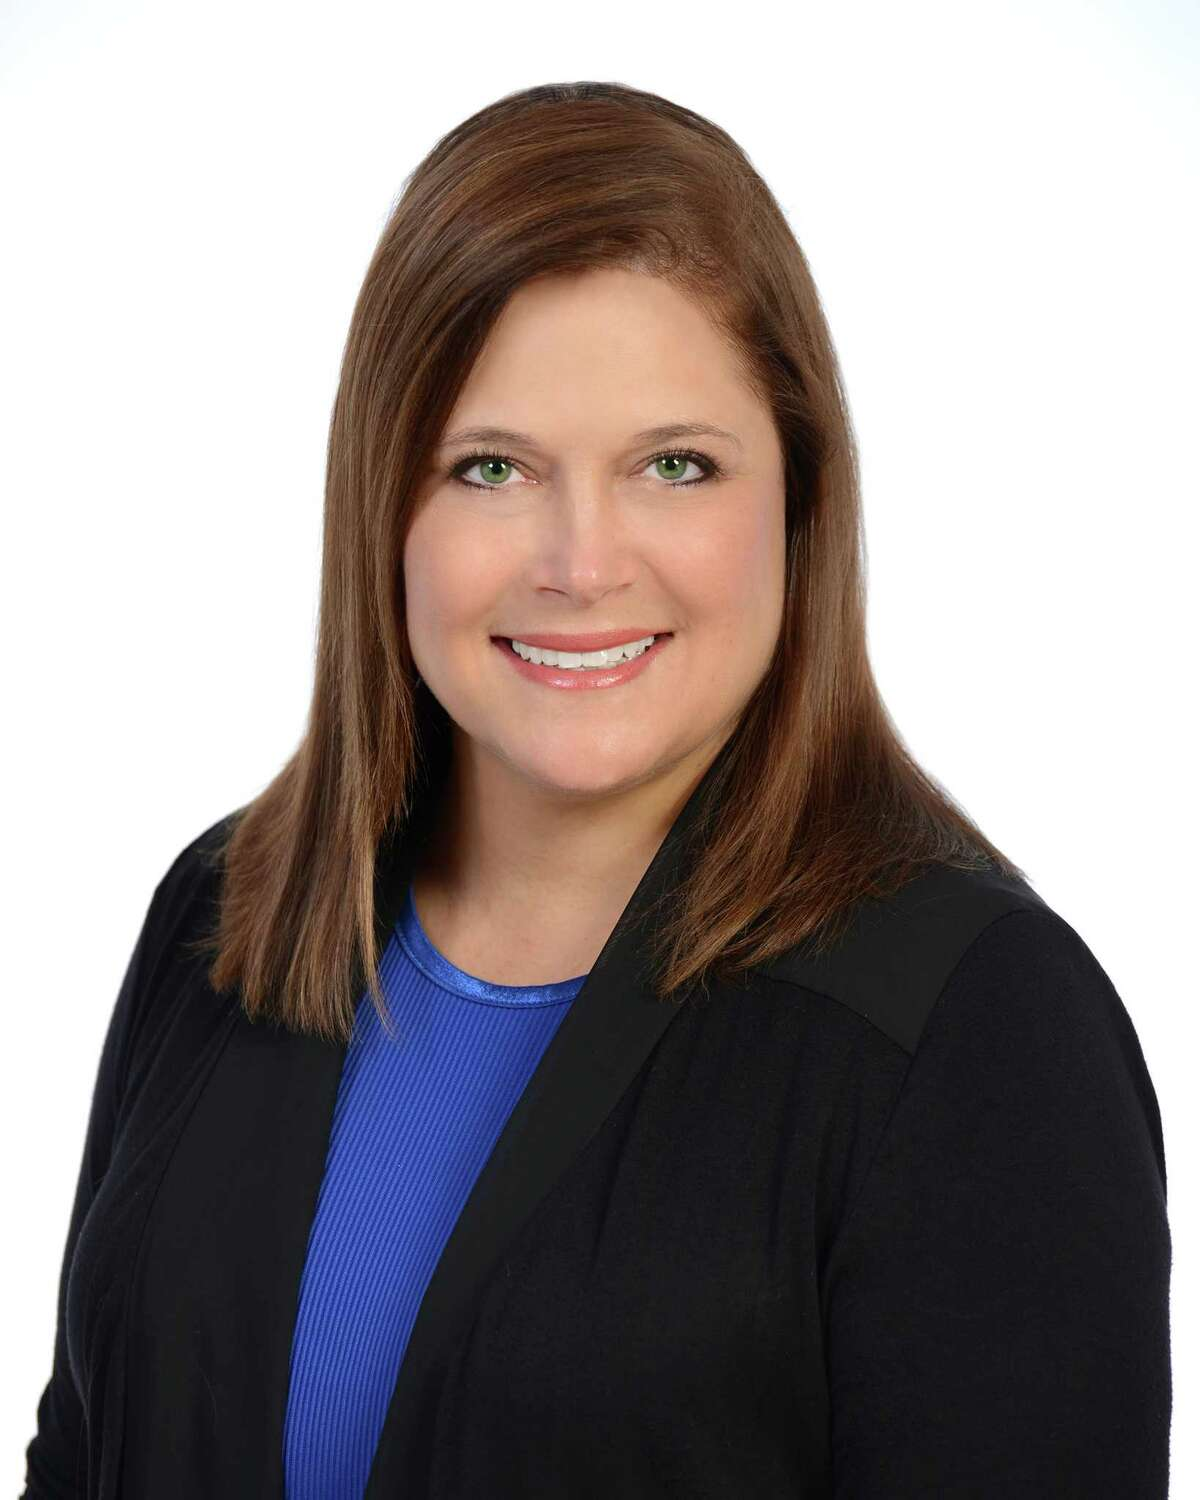 Dana Tebbe, Commercial Property Manager, The J. Beard Property Management Company